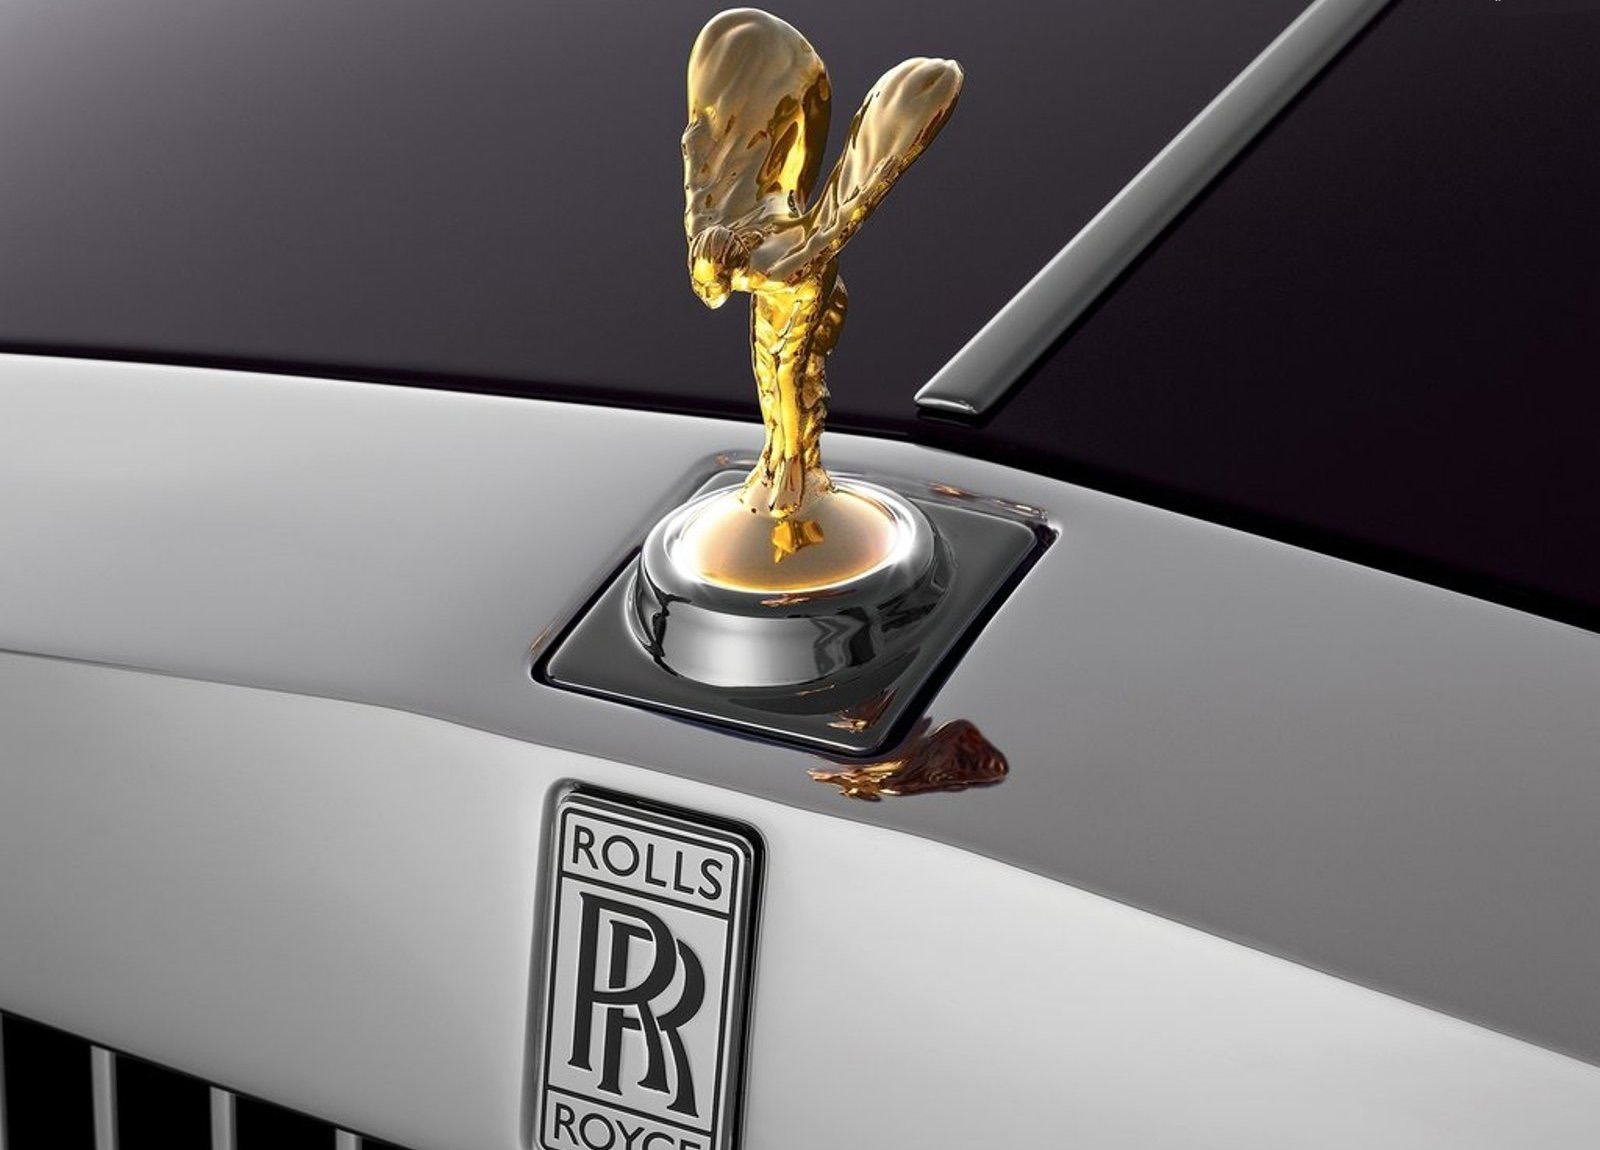 Rolls Royce Symbol Logo Brands For Free Hd 3d